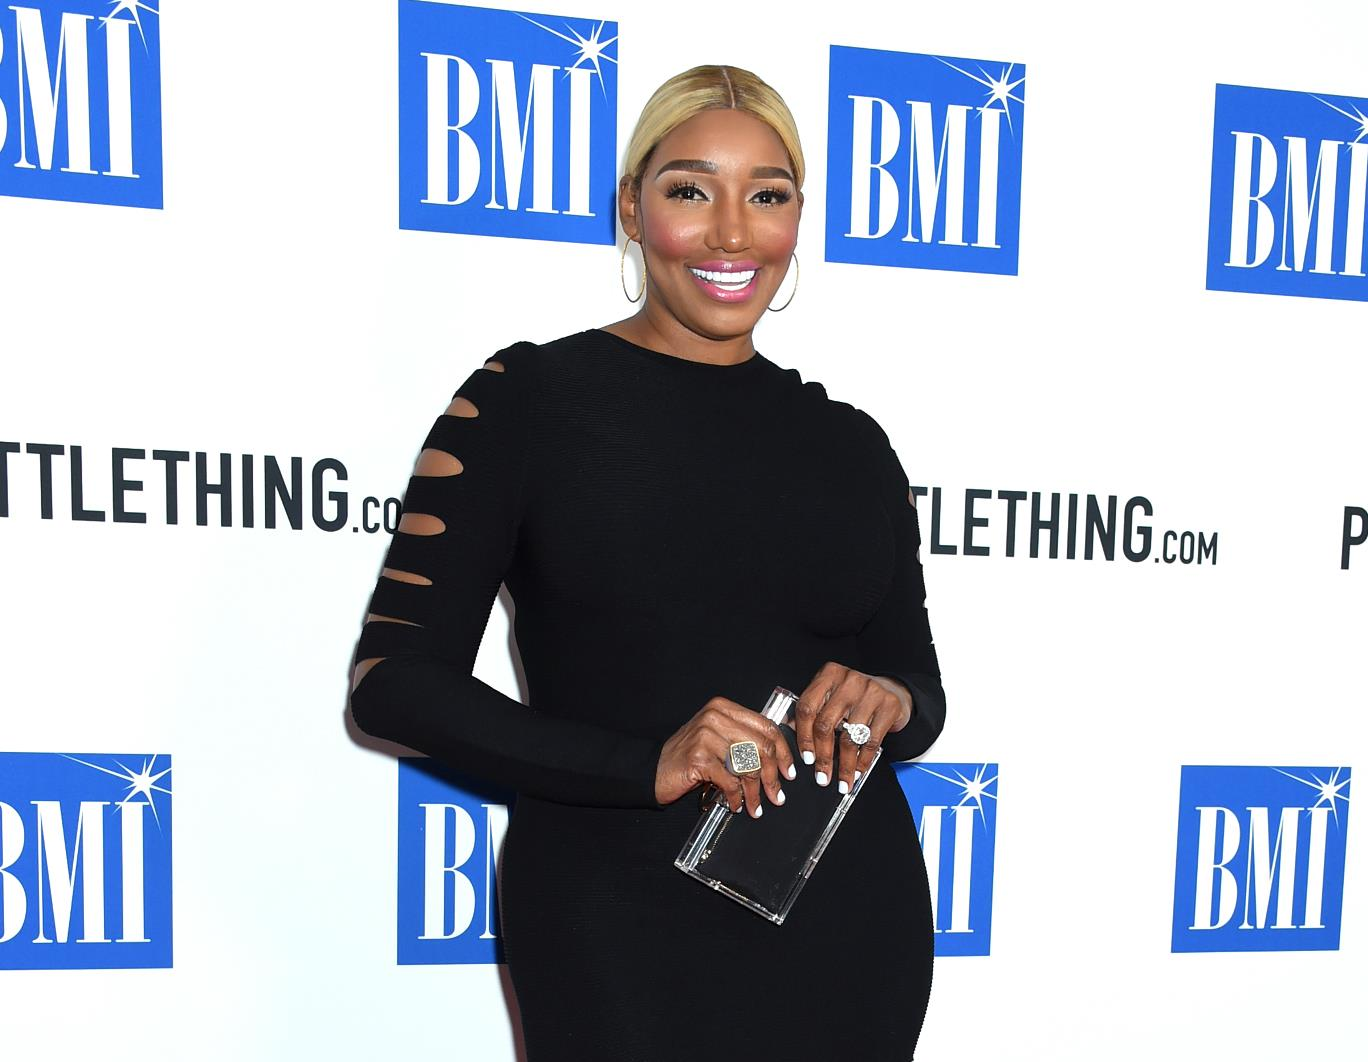 "Was Nene Leakes Demoted on RHOA? Plus She Snags a New E! Show in Development Called ""Glamsquad Showdown"" as Sources Claim She's Closer to Signing Her RHOA Contract"